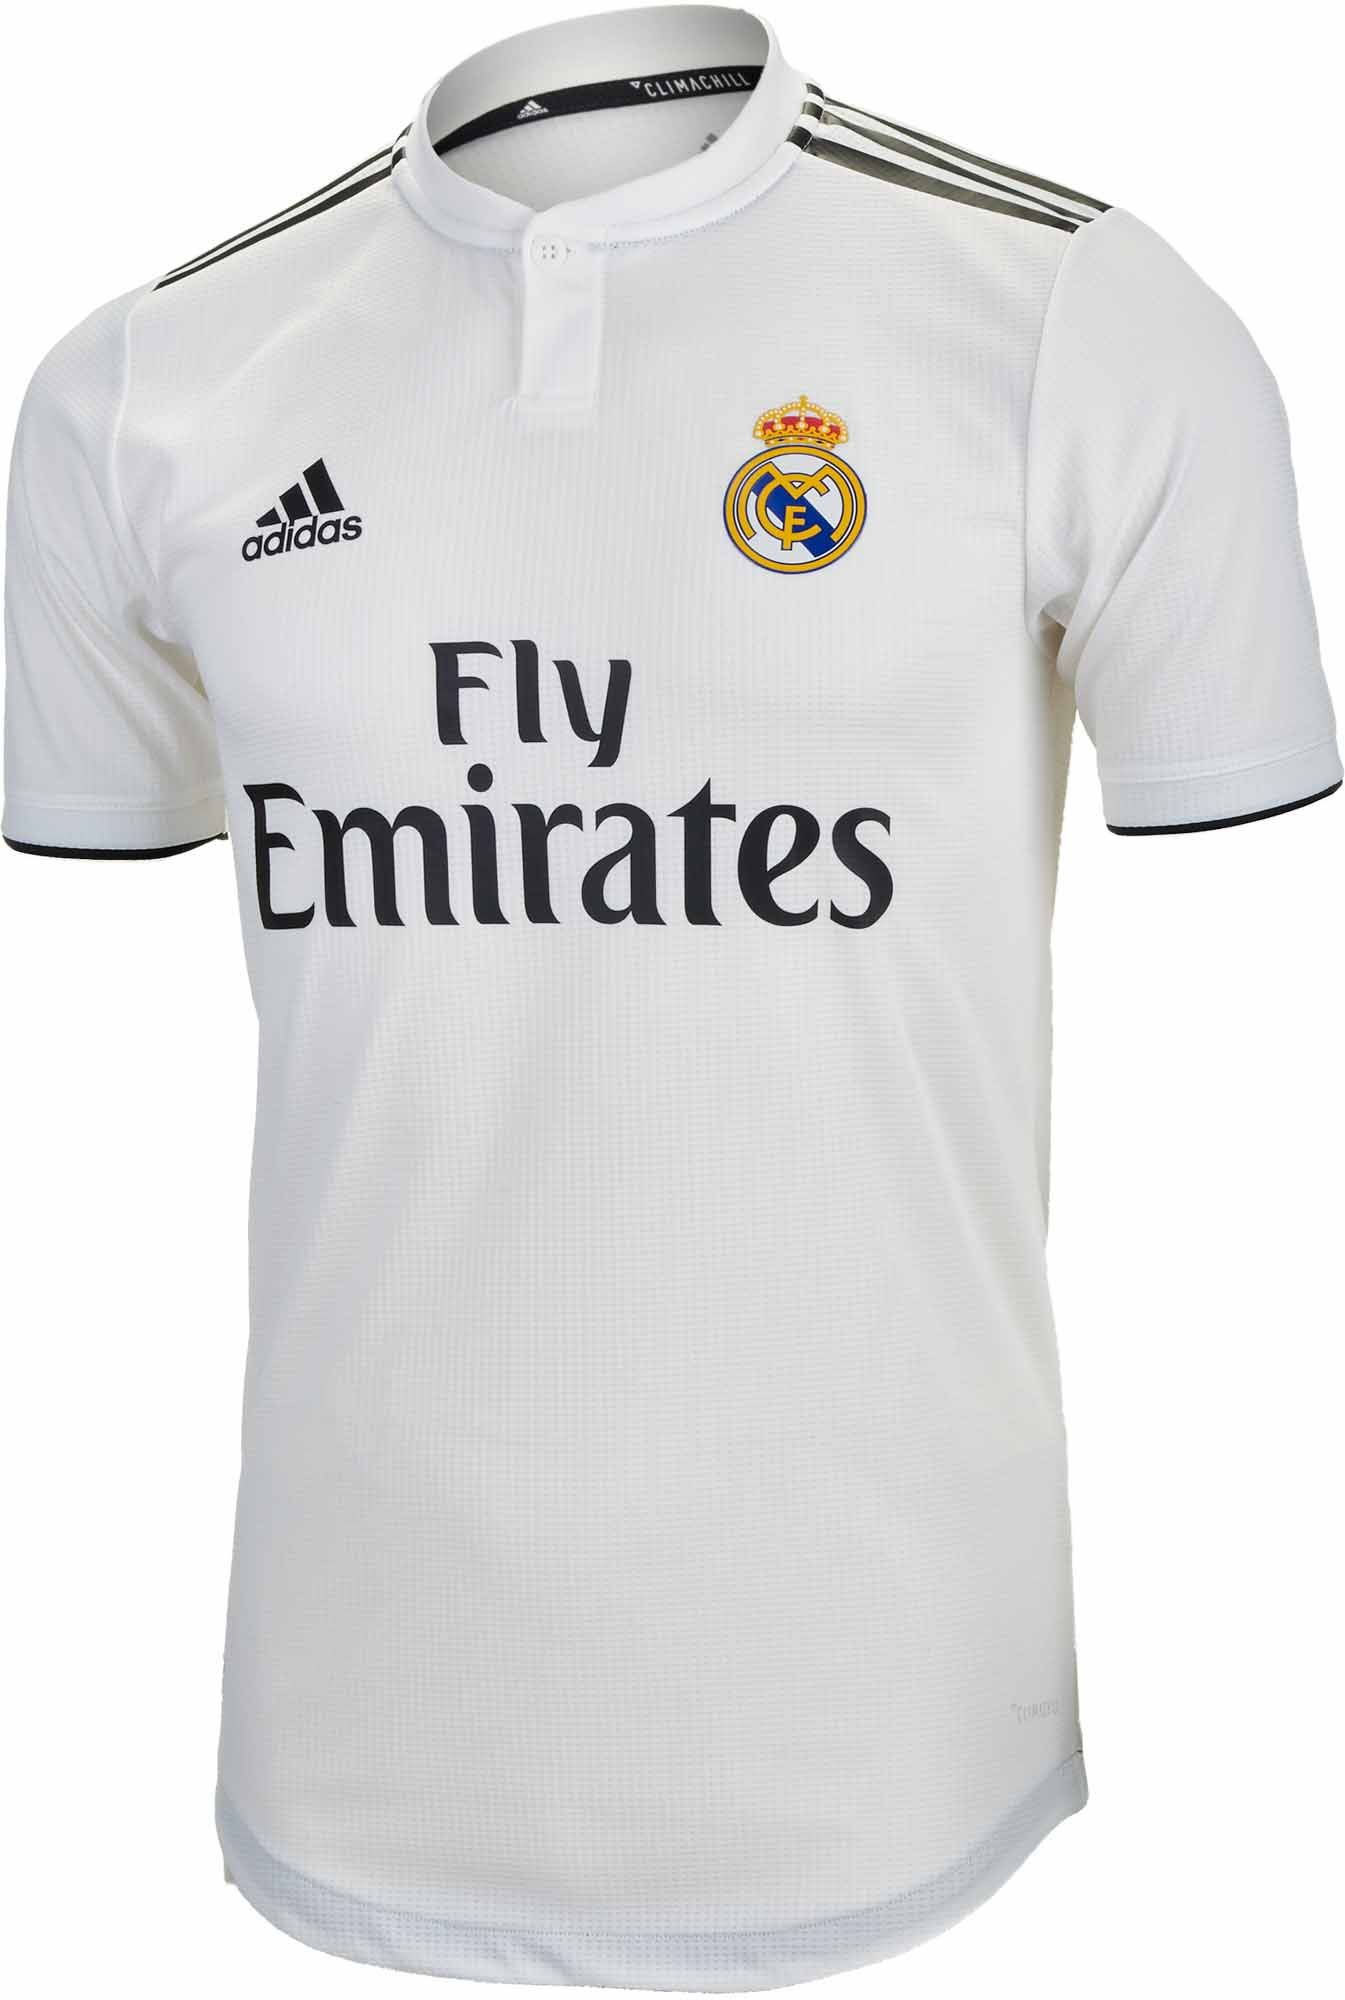 129d6e2fa 2018 19 adidas Real Madrid Authentic Home Jersey. Fresh at www.soccerpro.com